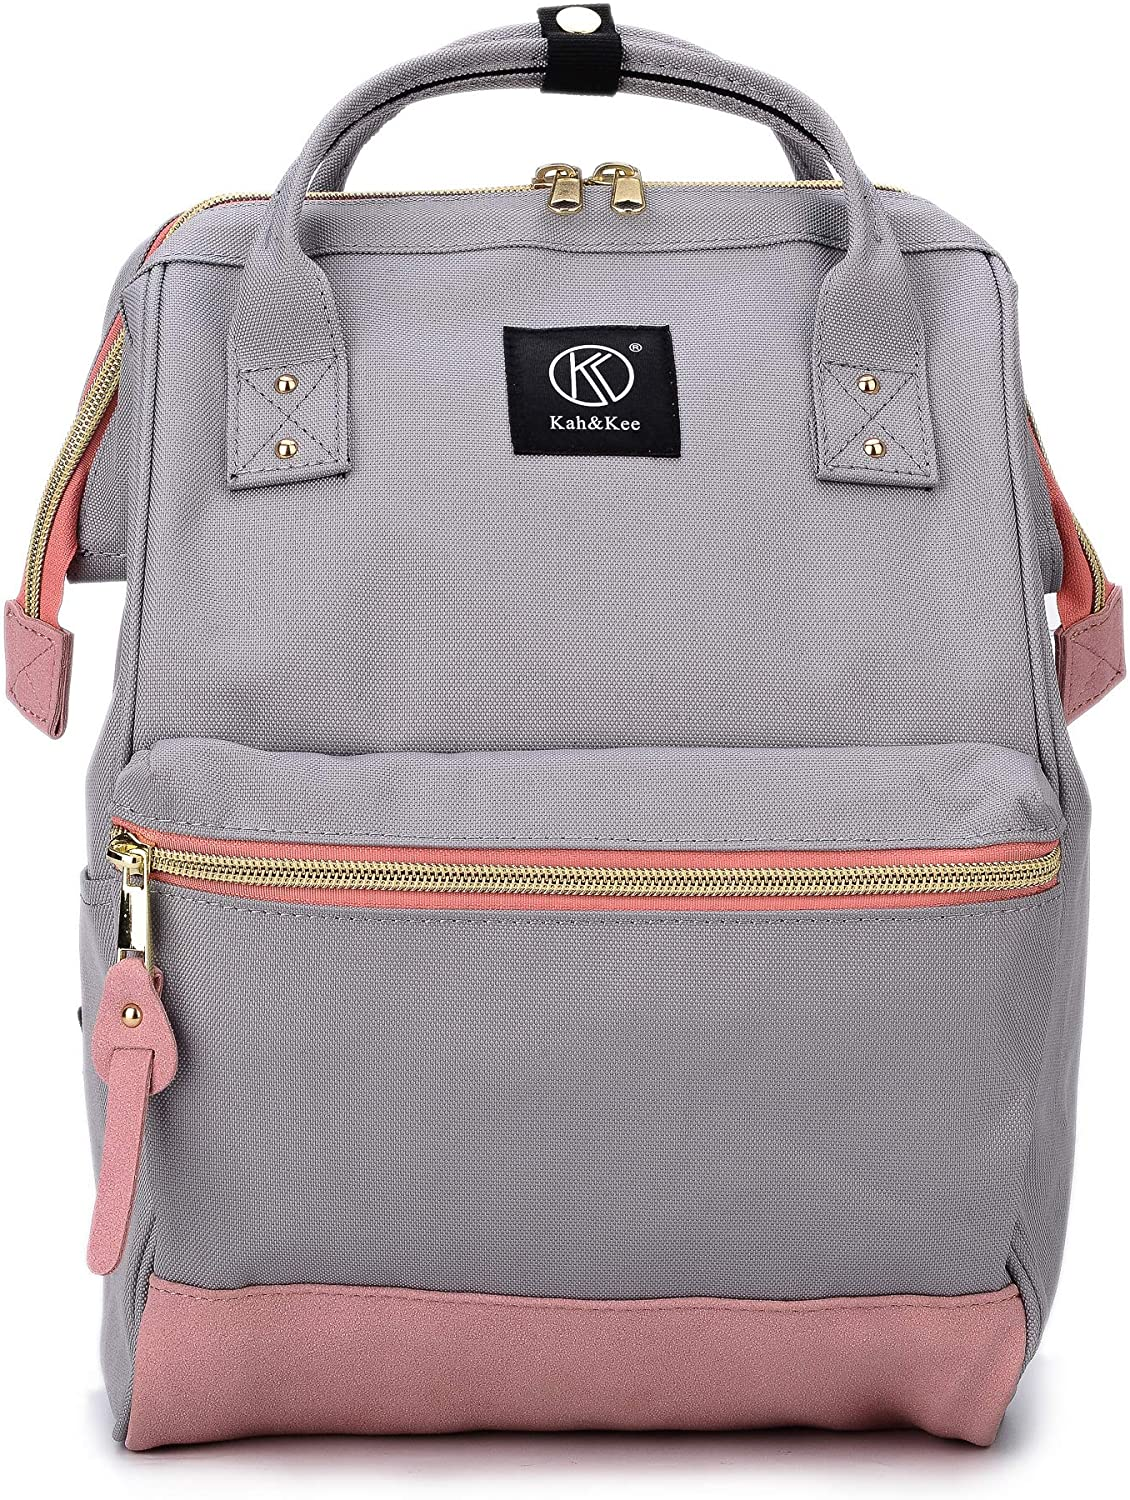 KahKee Polyester Travel Backpack mart L Anti-theft New product! New type Functional School